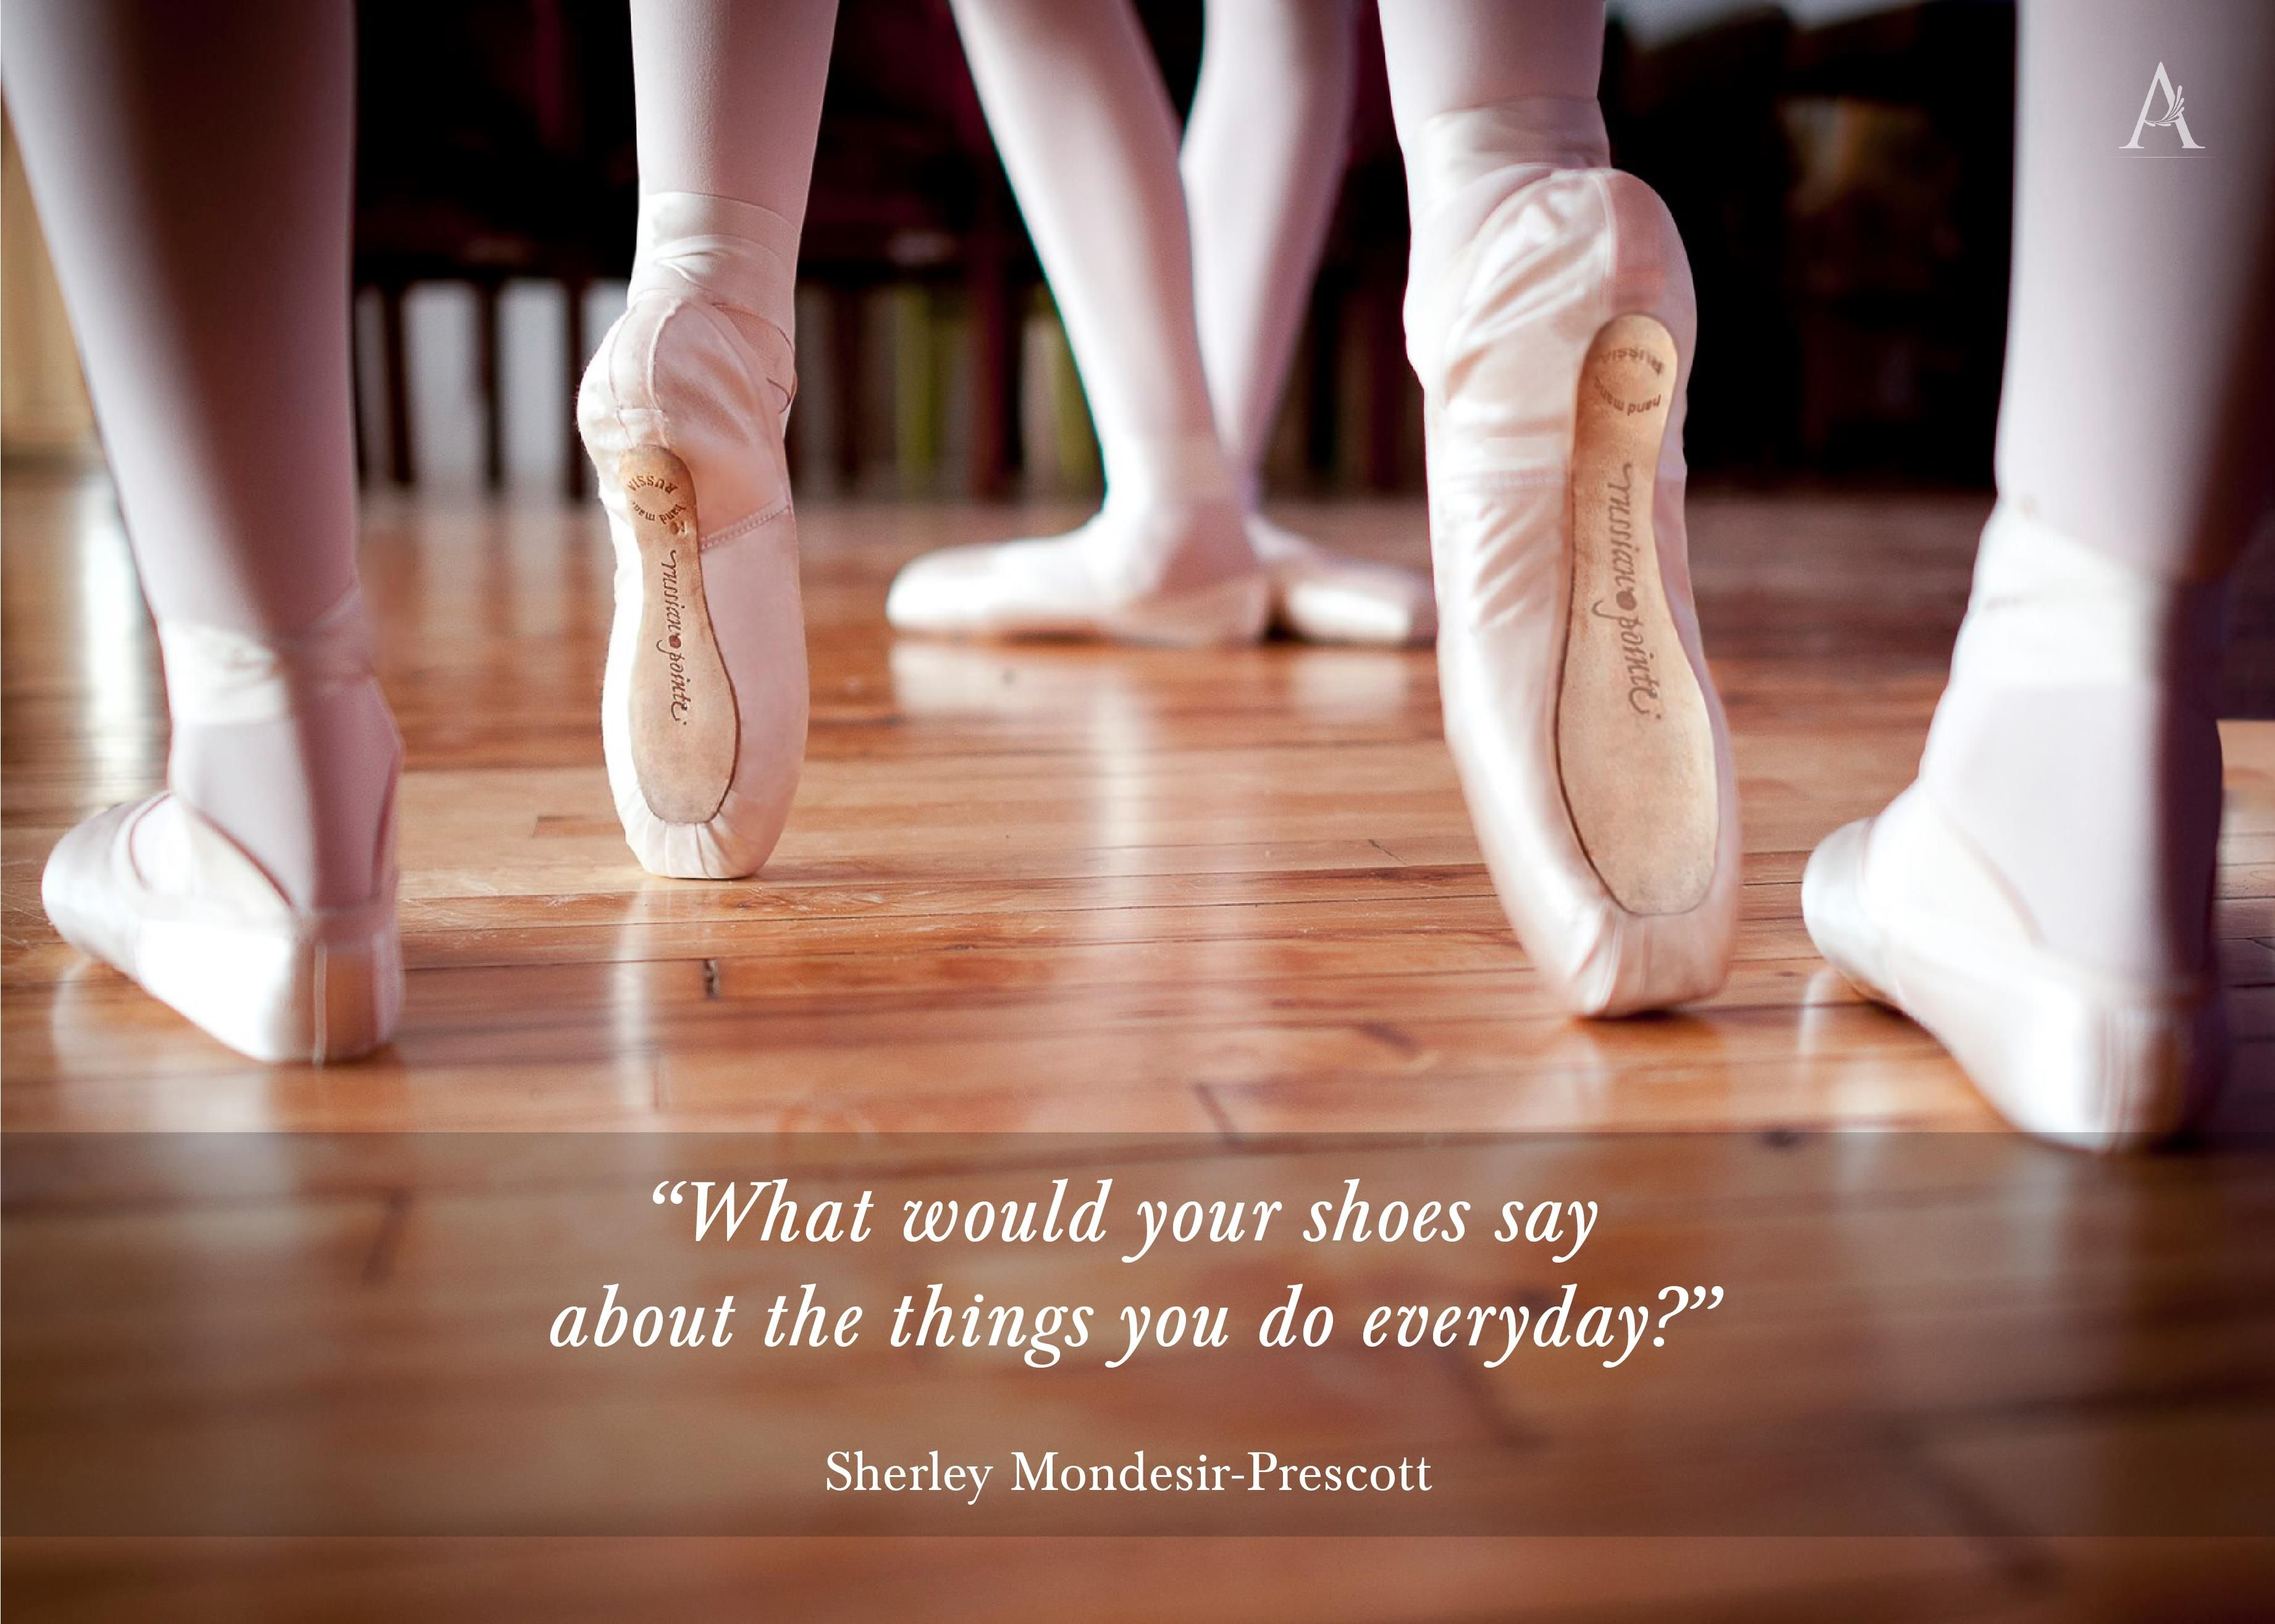 Your shoes, Pointe shoes, Ballet shoes